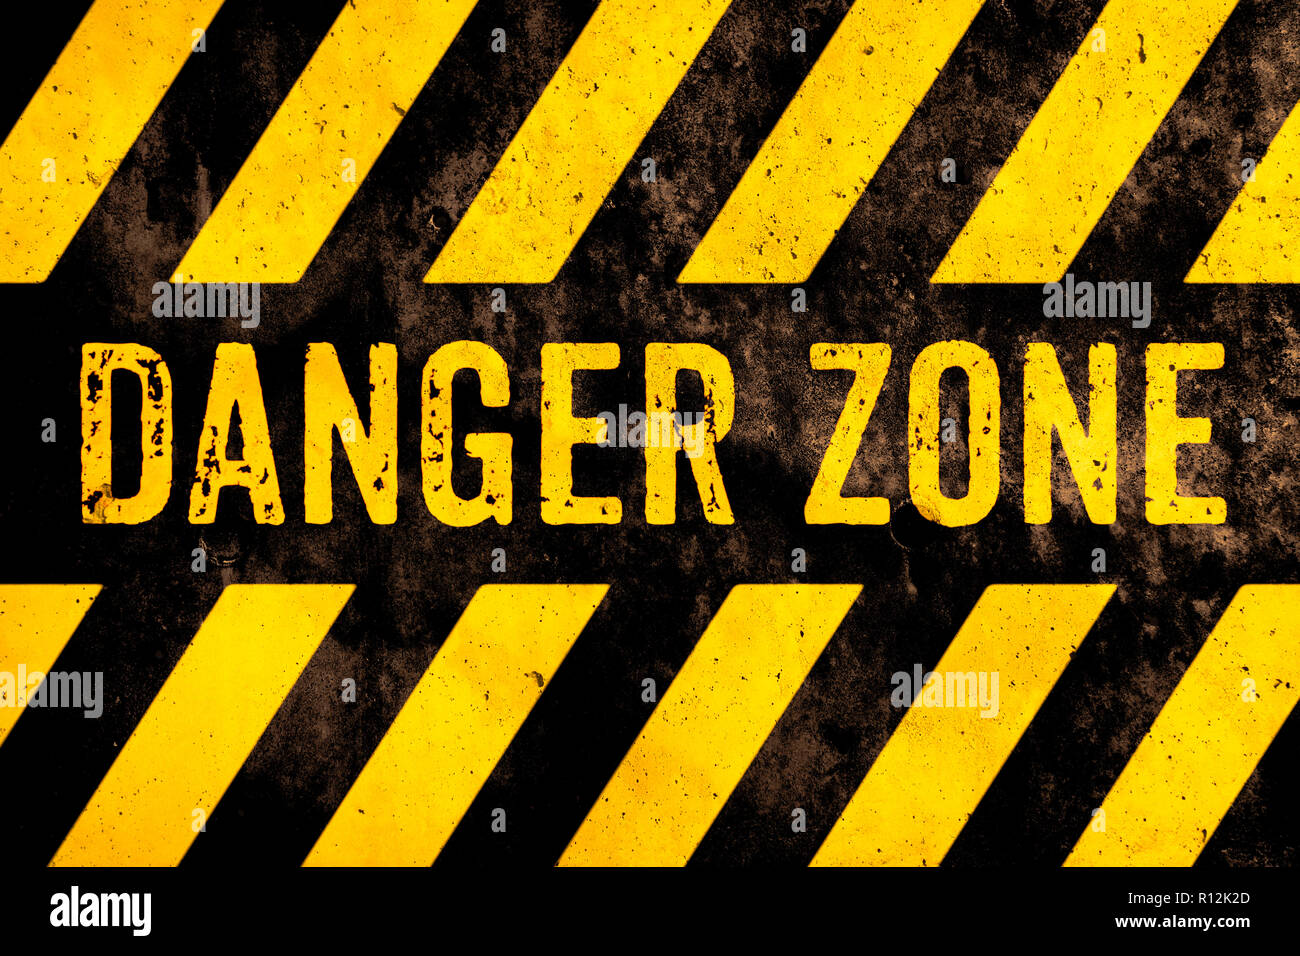 Danger zone warning sign text with yellow and black stripes painted over concrete wall surface facade cement texture background. Concept image for cau - Stock Image